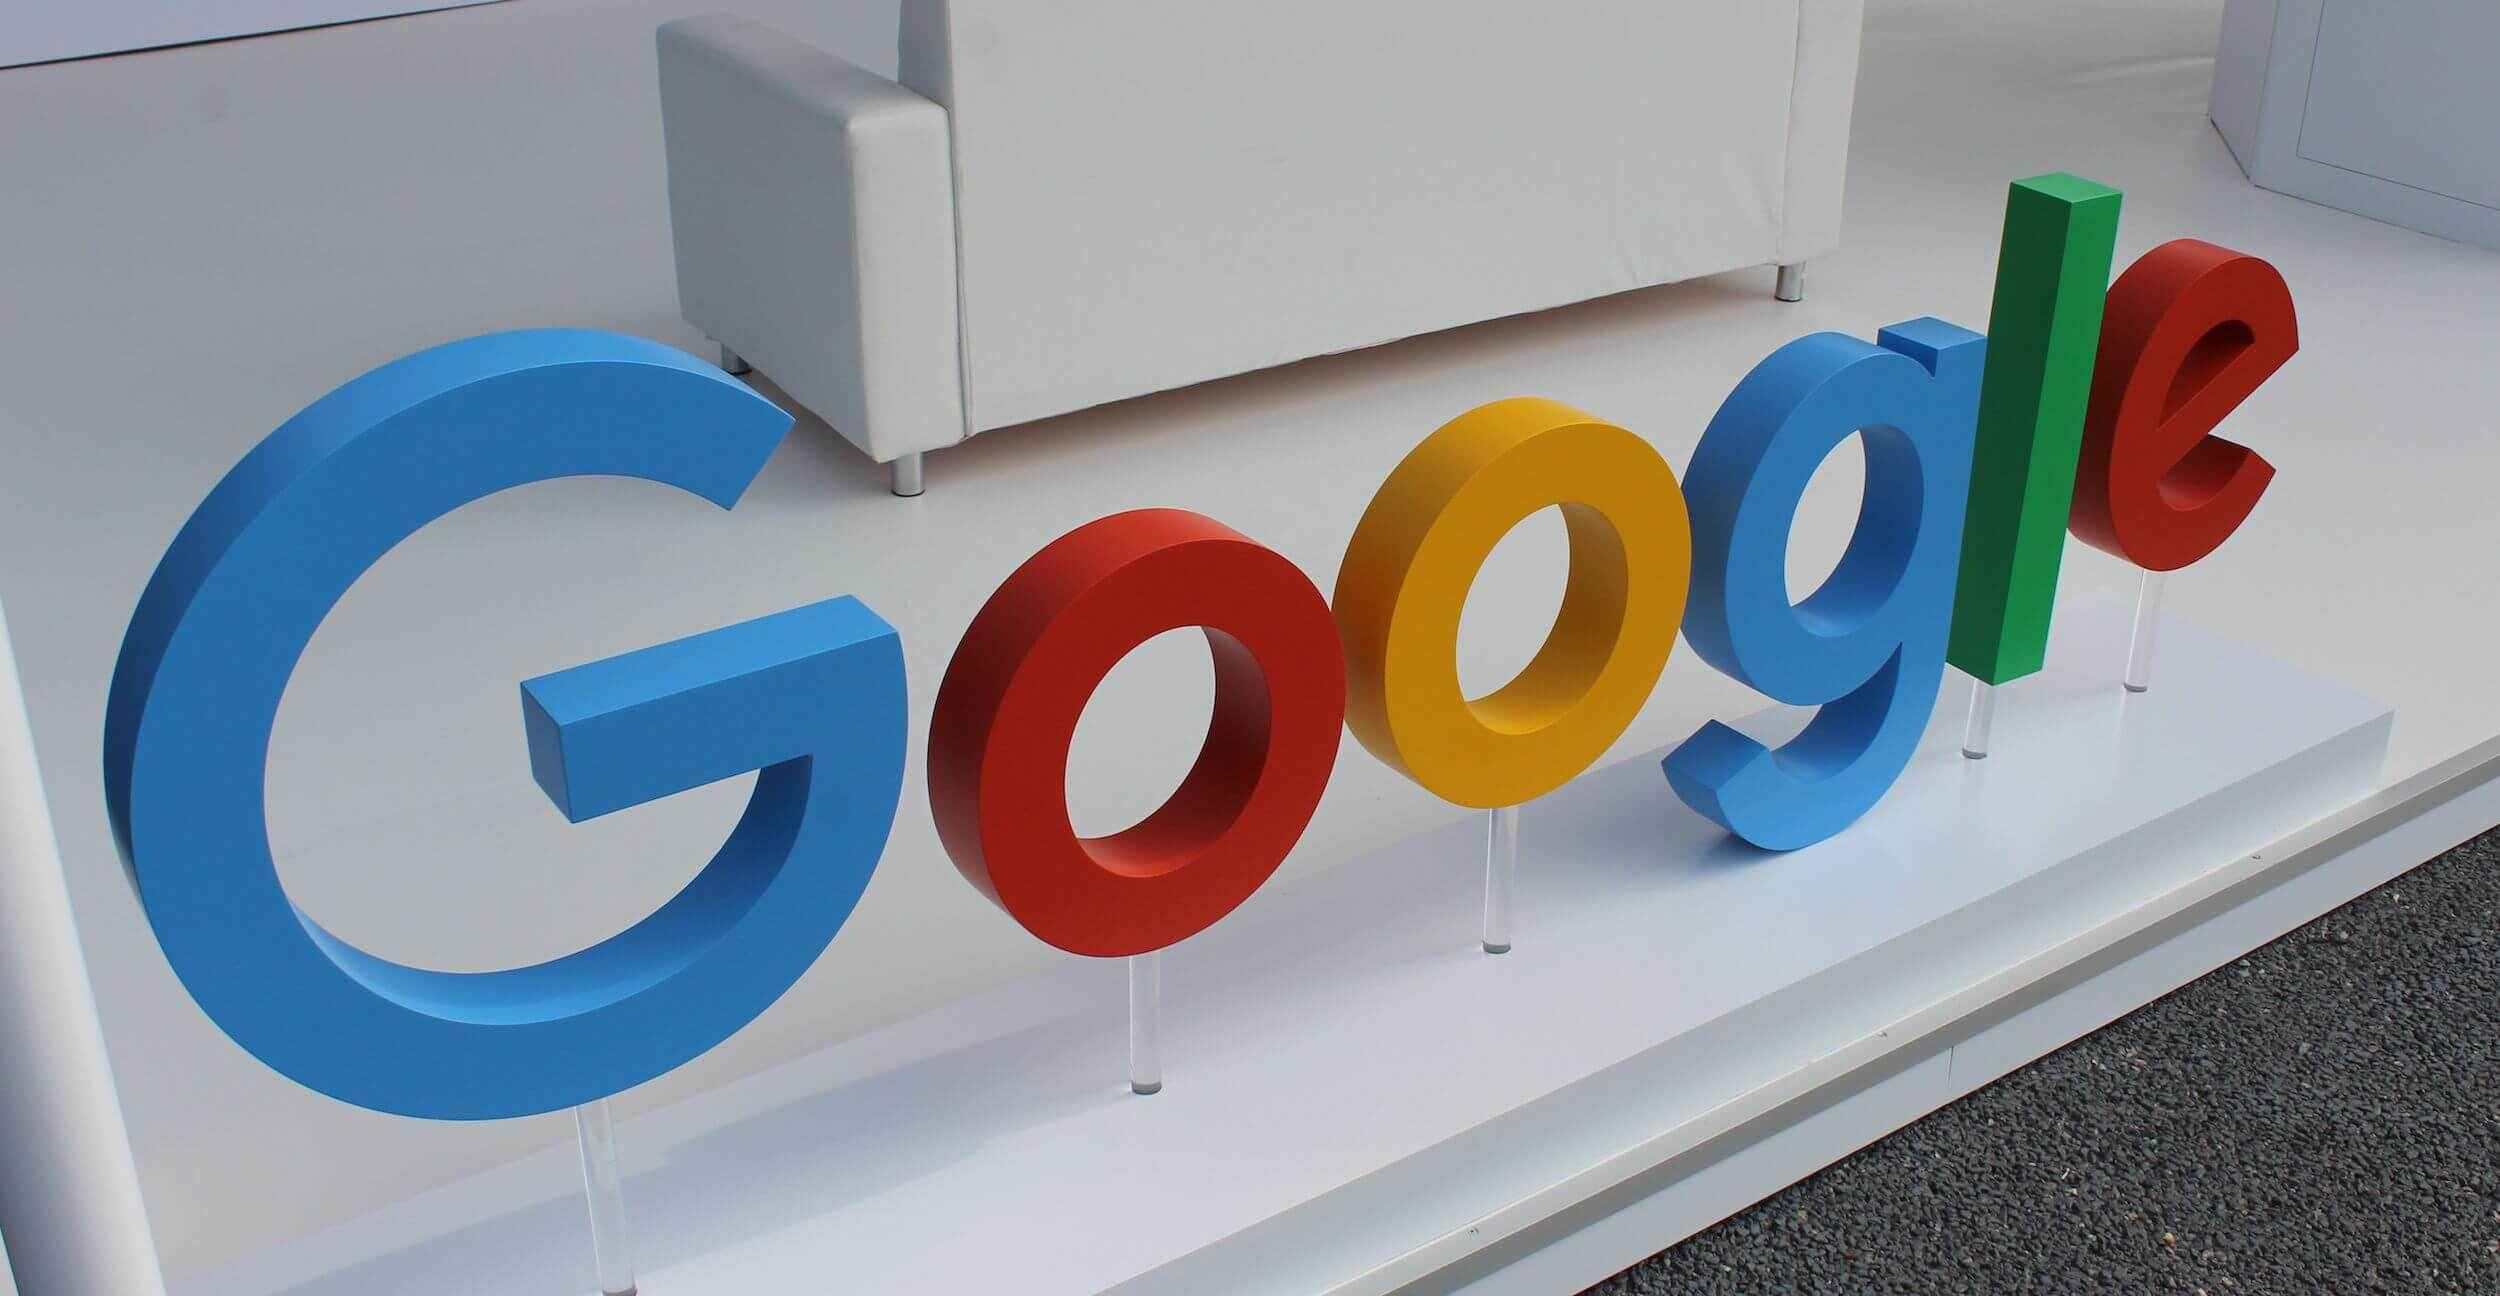 Google Digitalna garaža – SEO optimizacija web stranica – 12.06.2019. godine – 17 do 20 sati